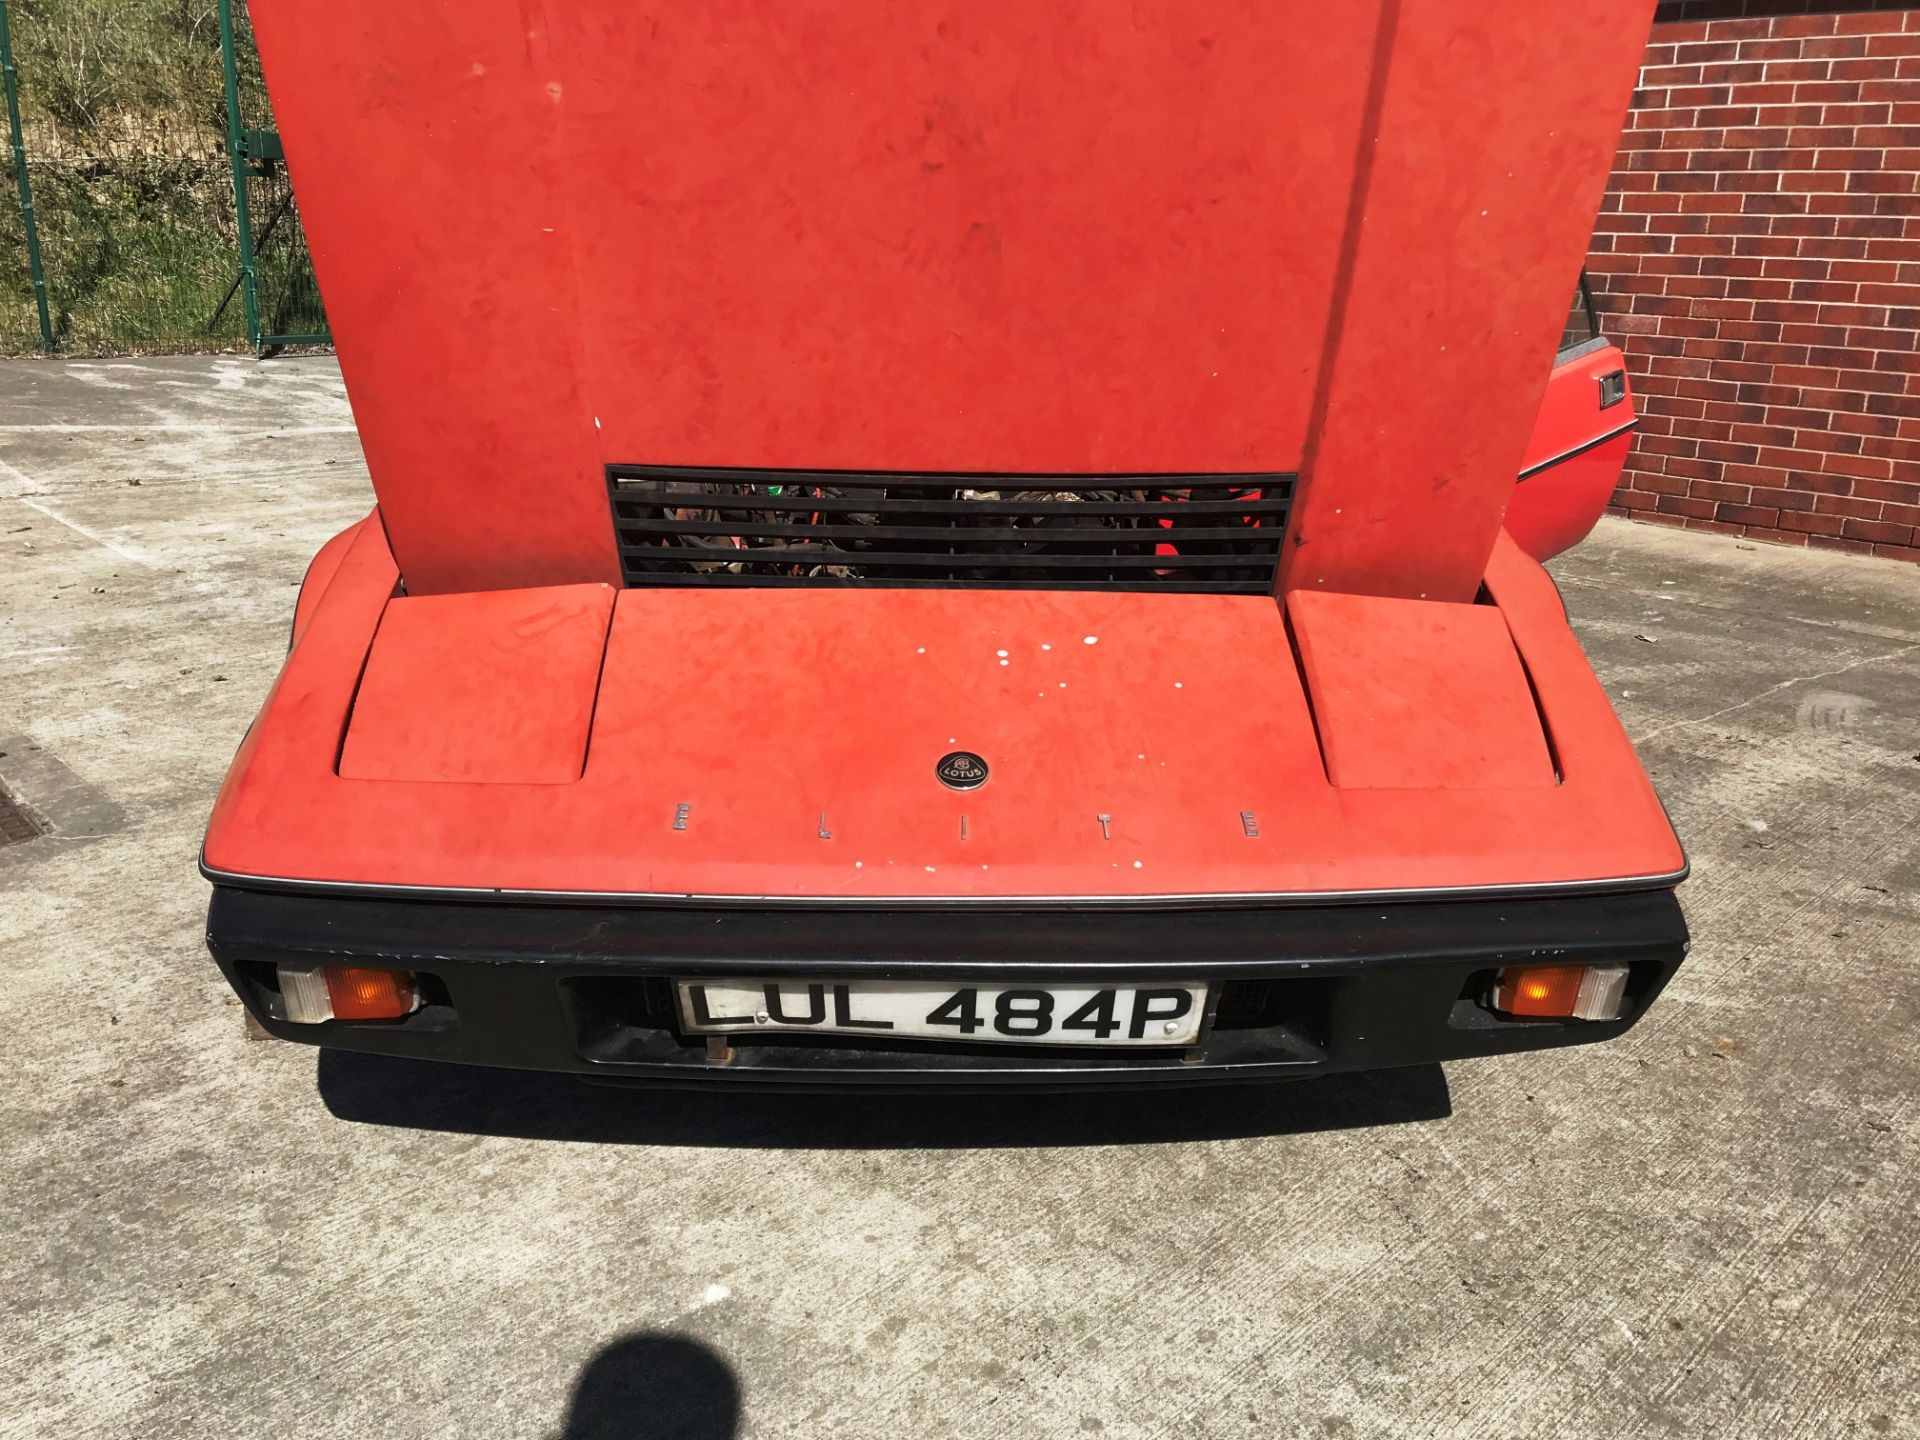 BARN FIND - IN NEED OF TOTAL RESTORATION LOTUS ELITE TWO DOOR SALOON (1973cc) - AUTOMATIC - petrol - Image 3 of 14